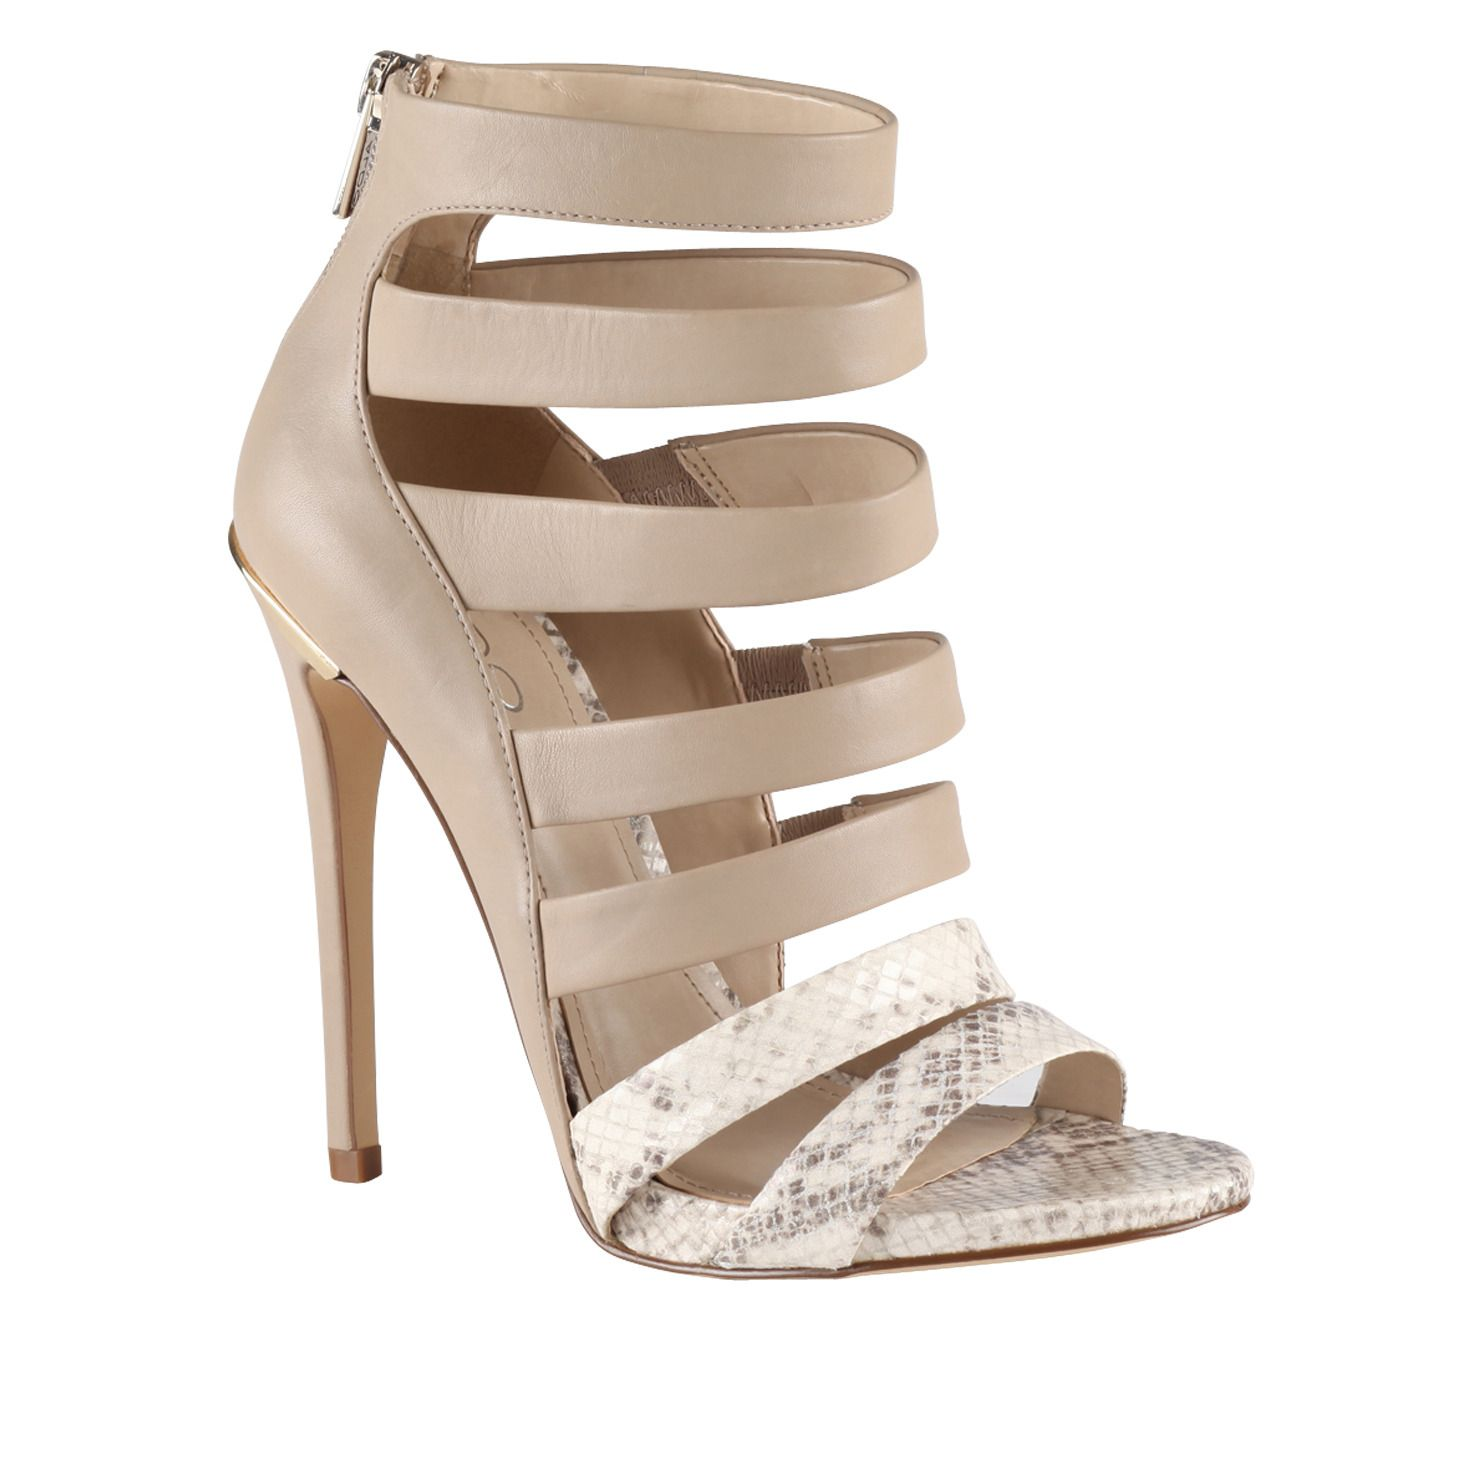 SOSHANNAH - women's high heels sandals for sale at ALDO Shoes ...